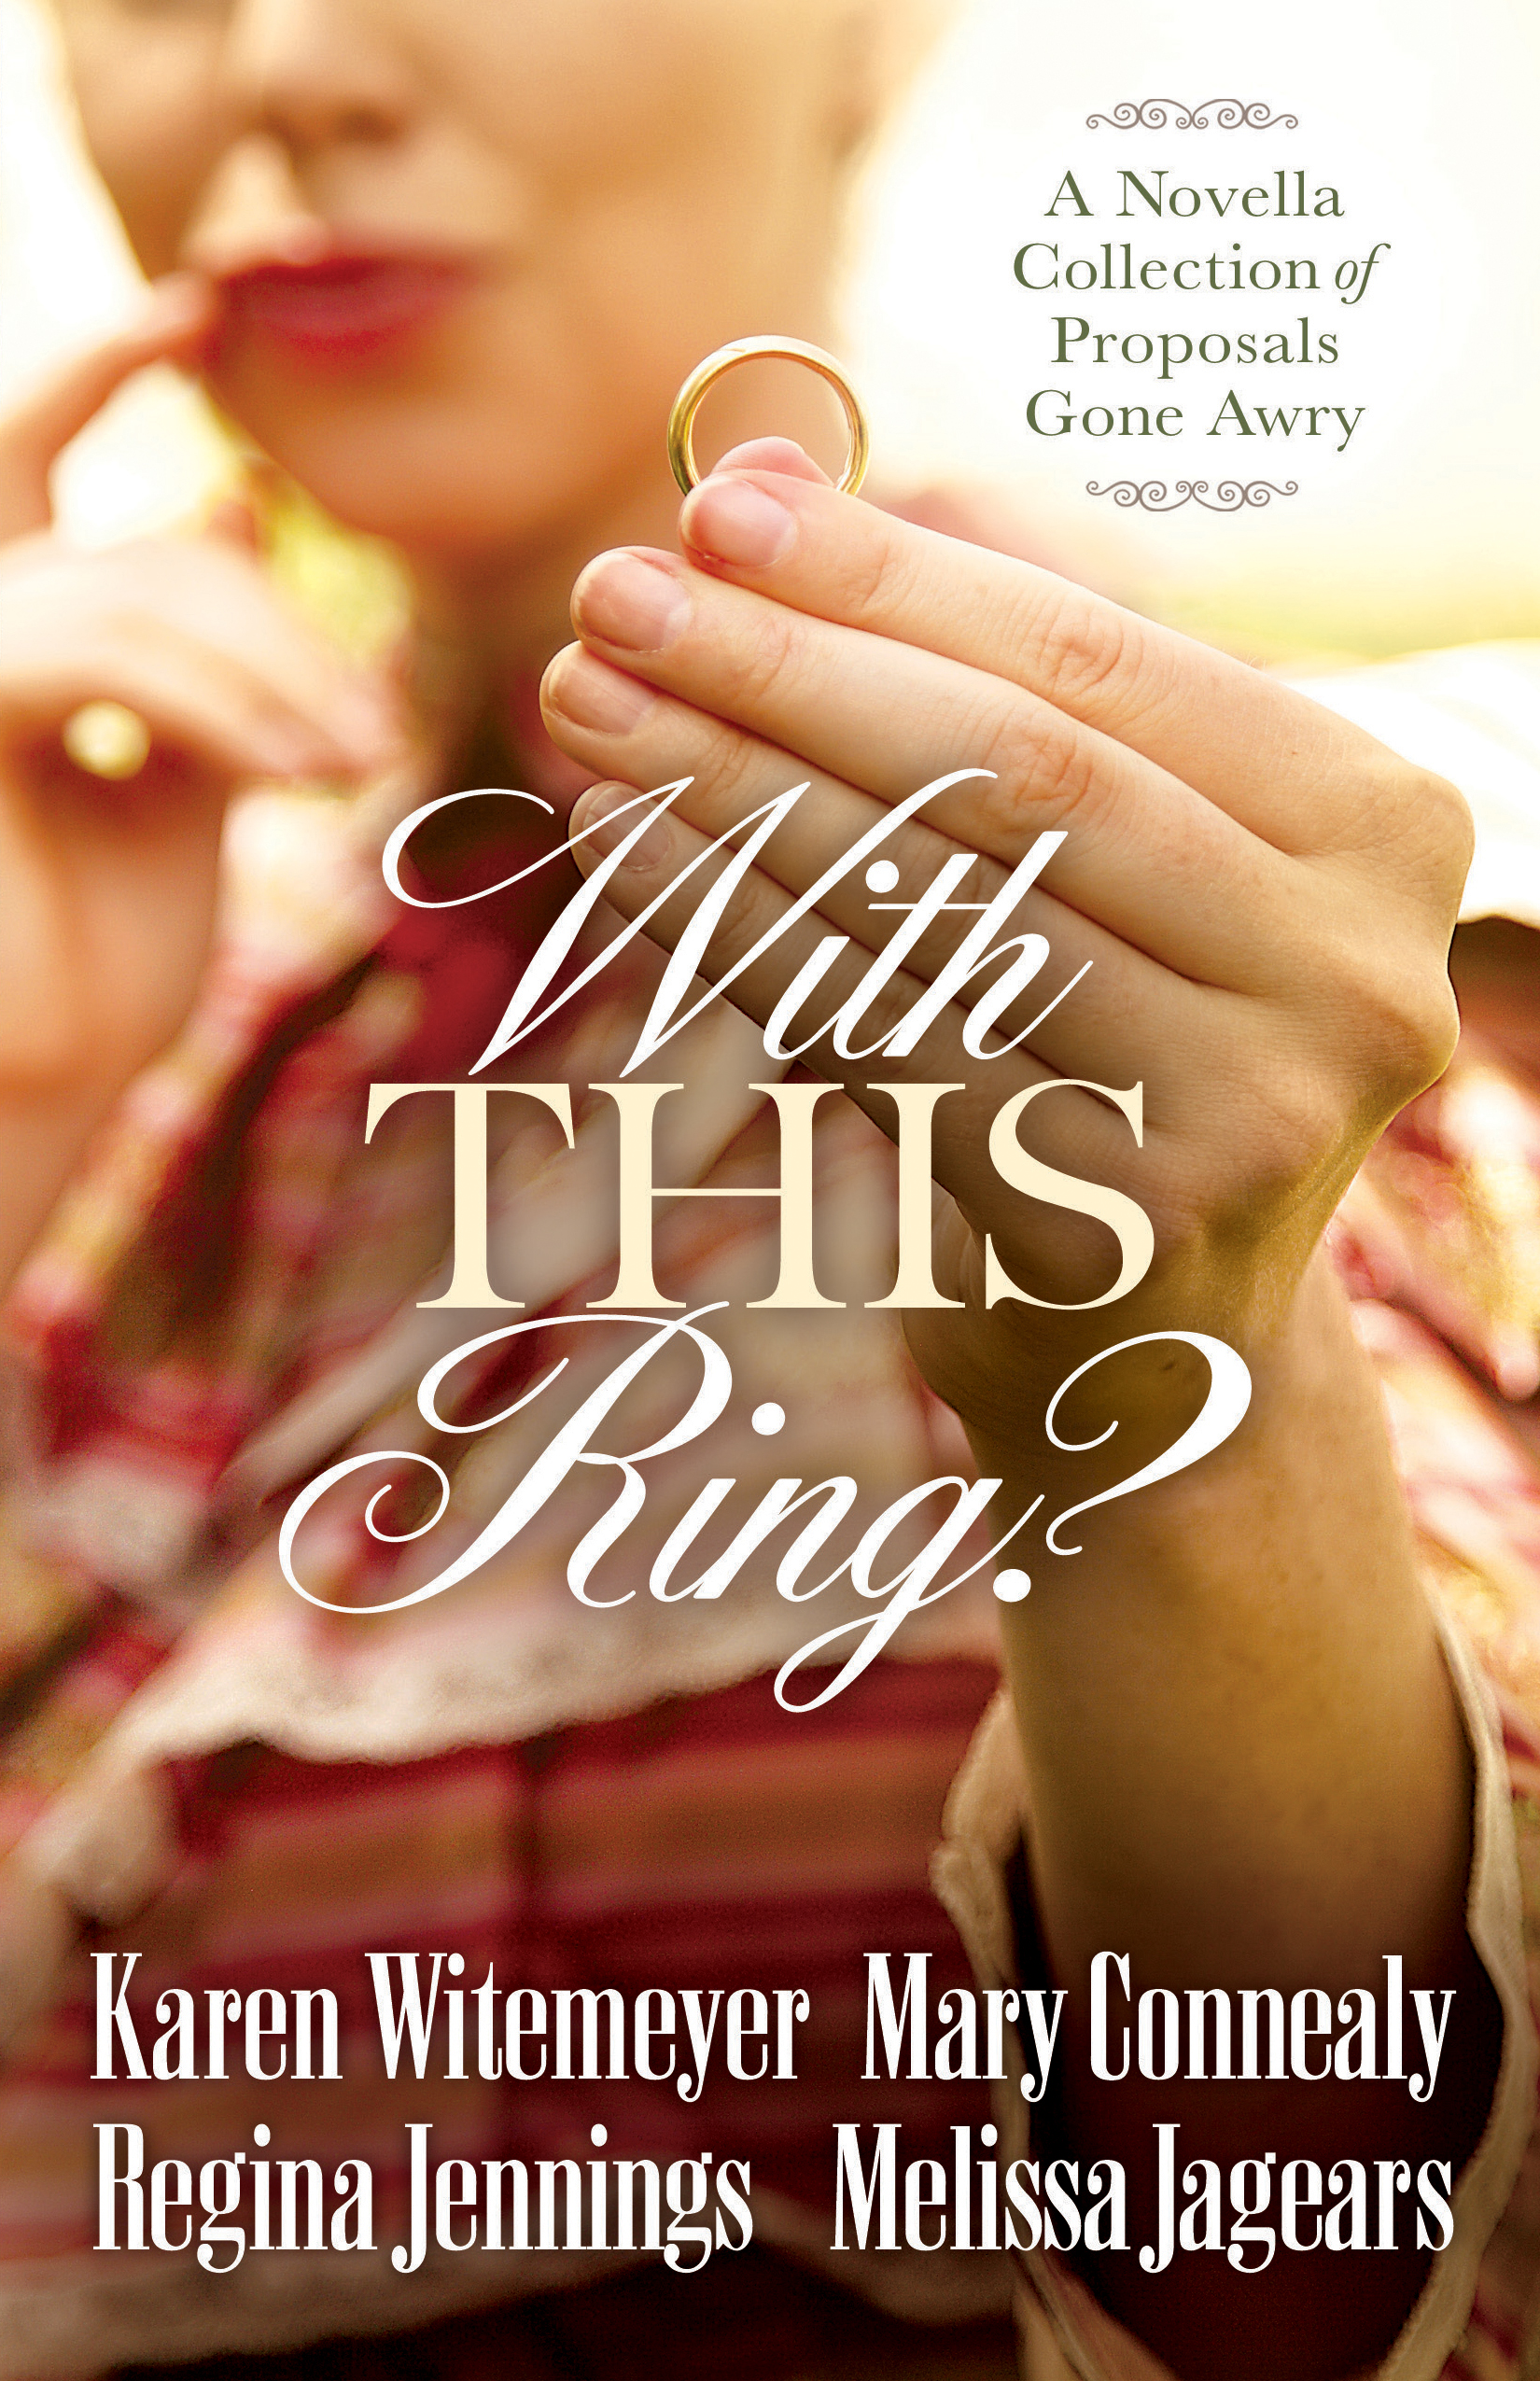 With This Ring? by Karen Witemeyer, Mary Connealy, Melissa Jagears, and Regina Jennings